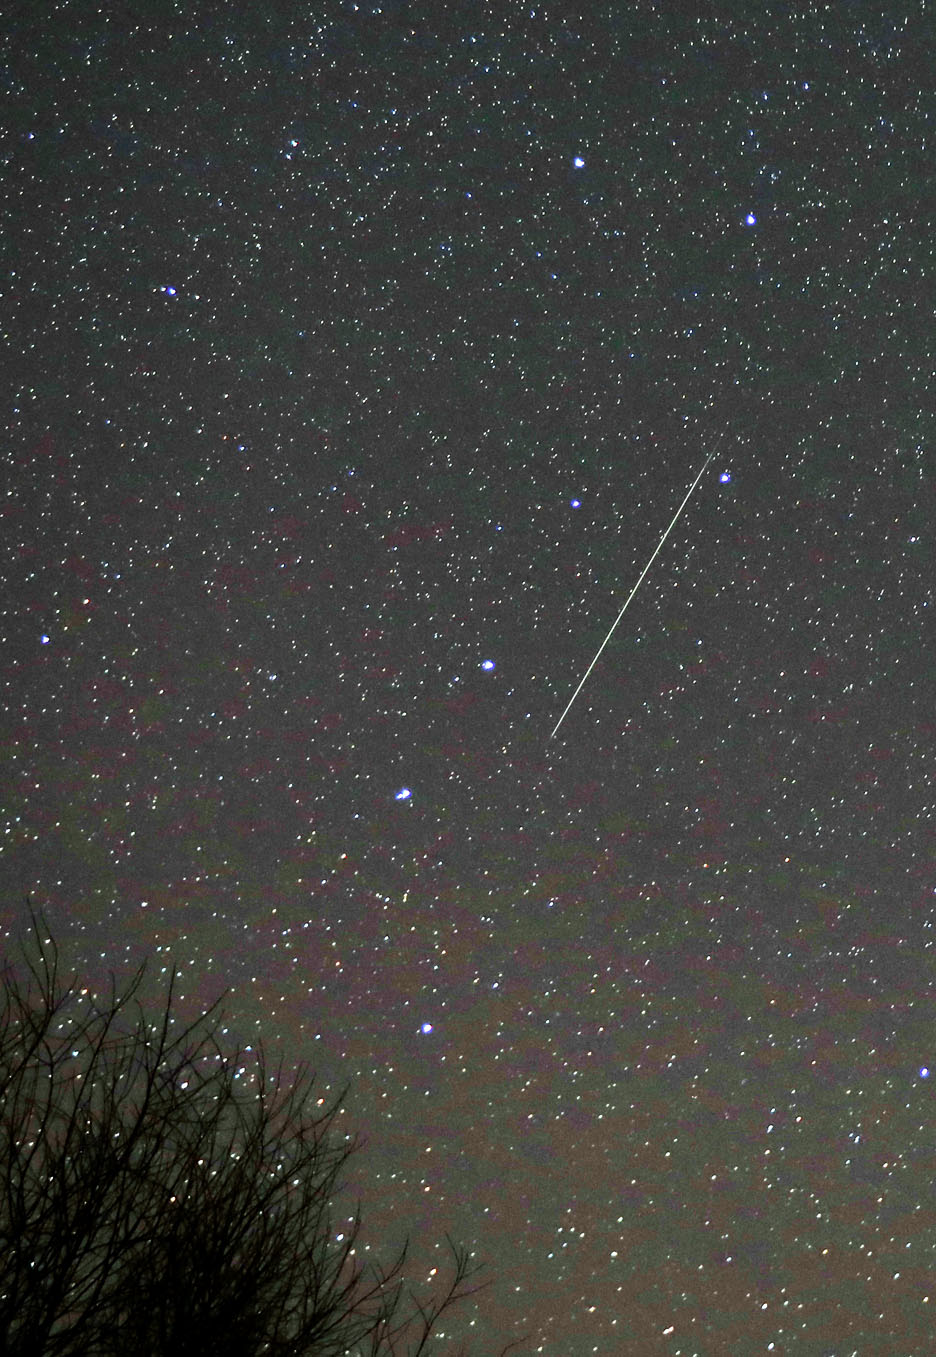 A Geminid meteor during the 2018 shower